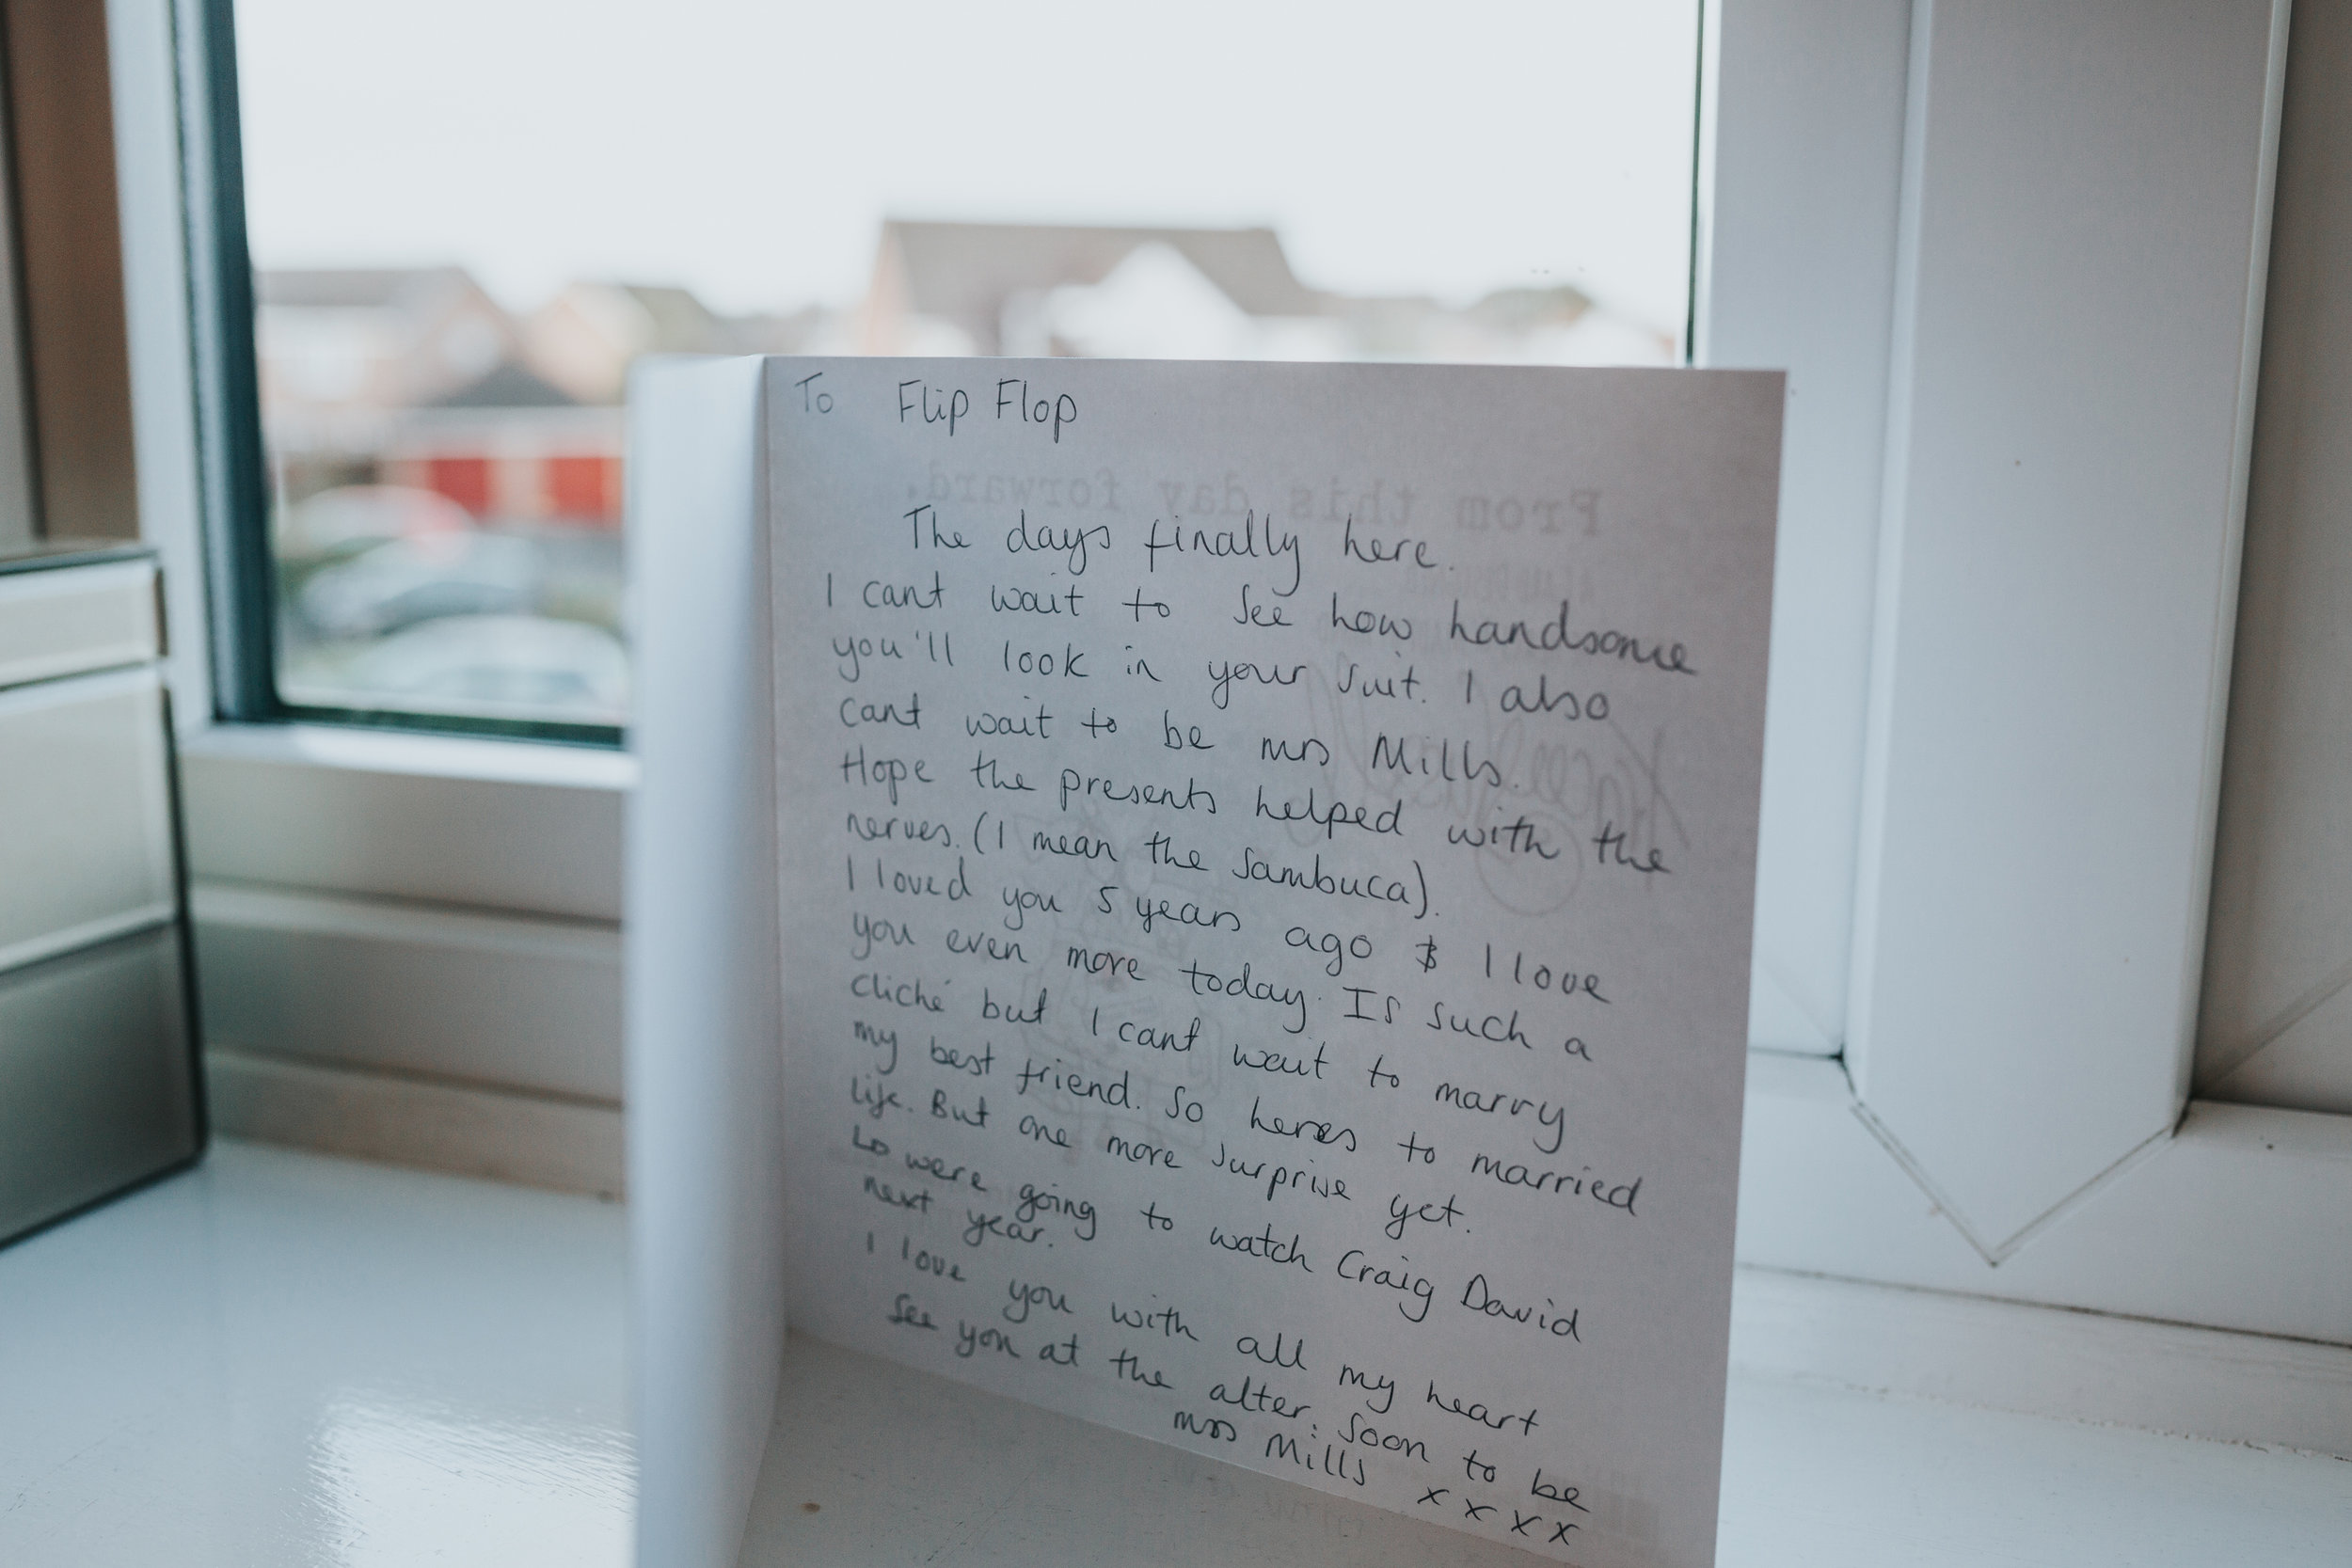 A card from the bride to the groom.